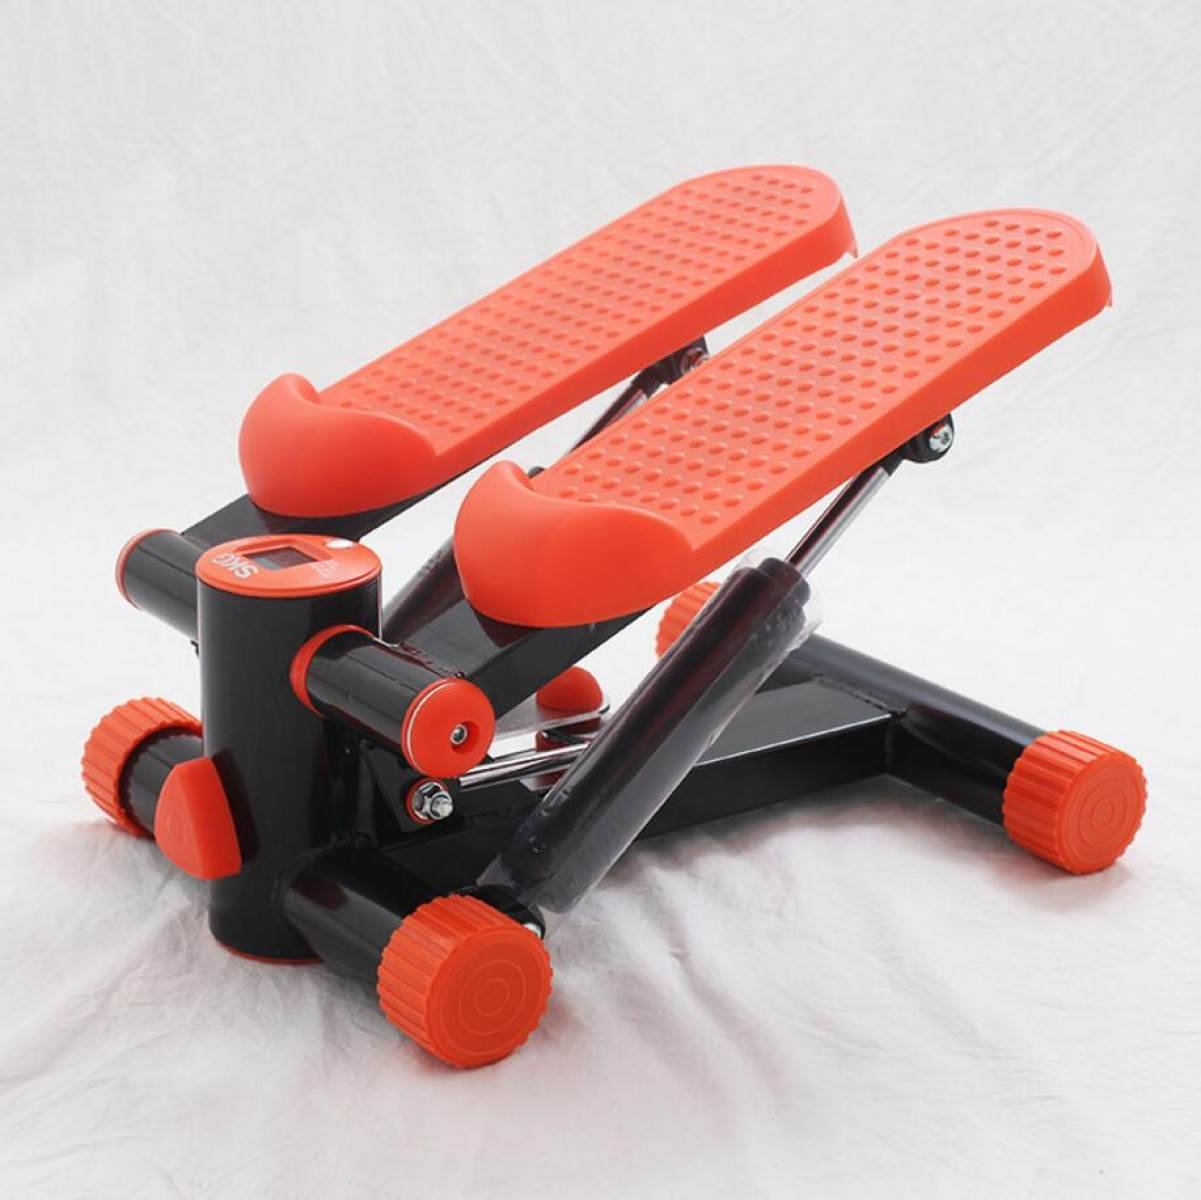 Stepper Ultra-quiet Hydraulic Pedal Fitness Exercise Equipment Body Aerobic Exercise Machine Slimming Machine by GHGJU (Image #2)